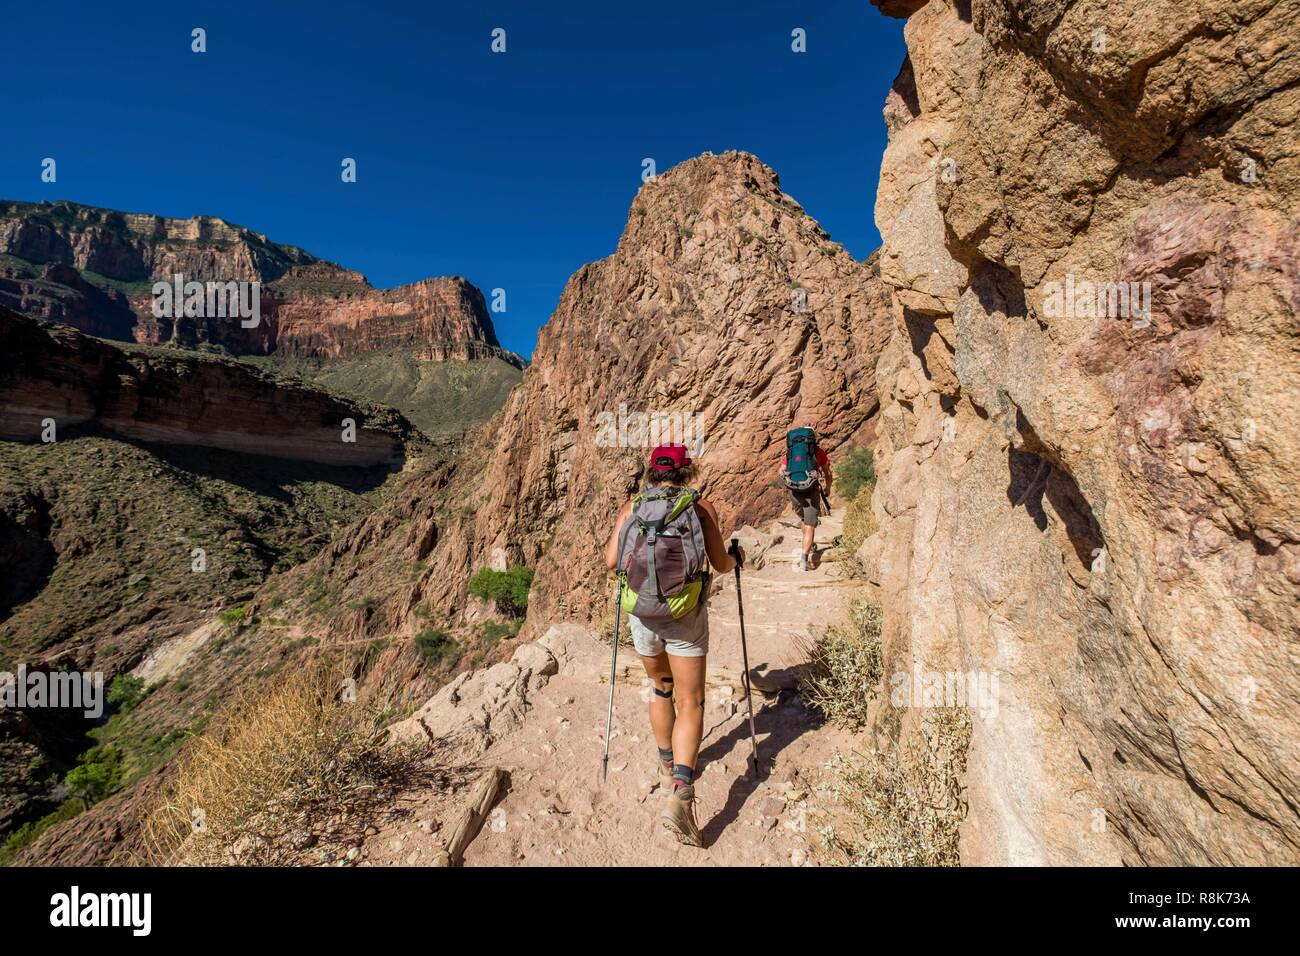 United States Arizona Grand Canyon National Park South Rim Hiking Up The Canyon From Colorado River Till Gd Canyon Village Stock Photo Alamy